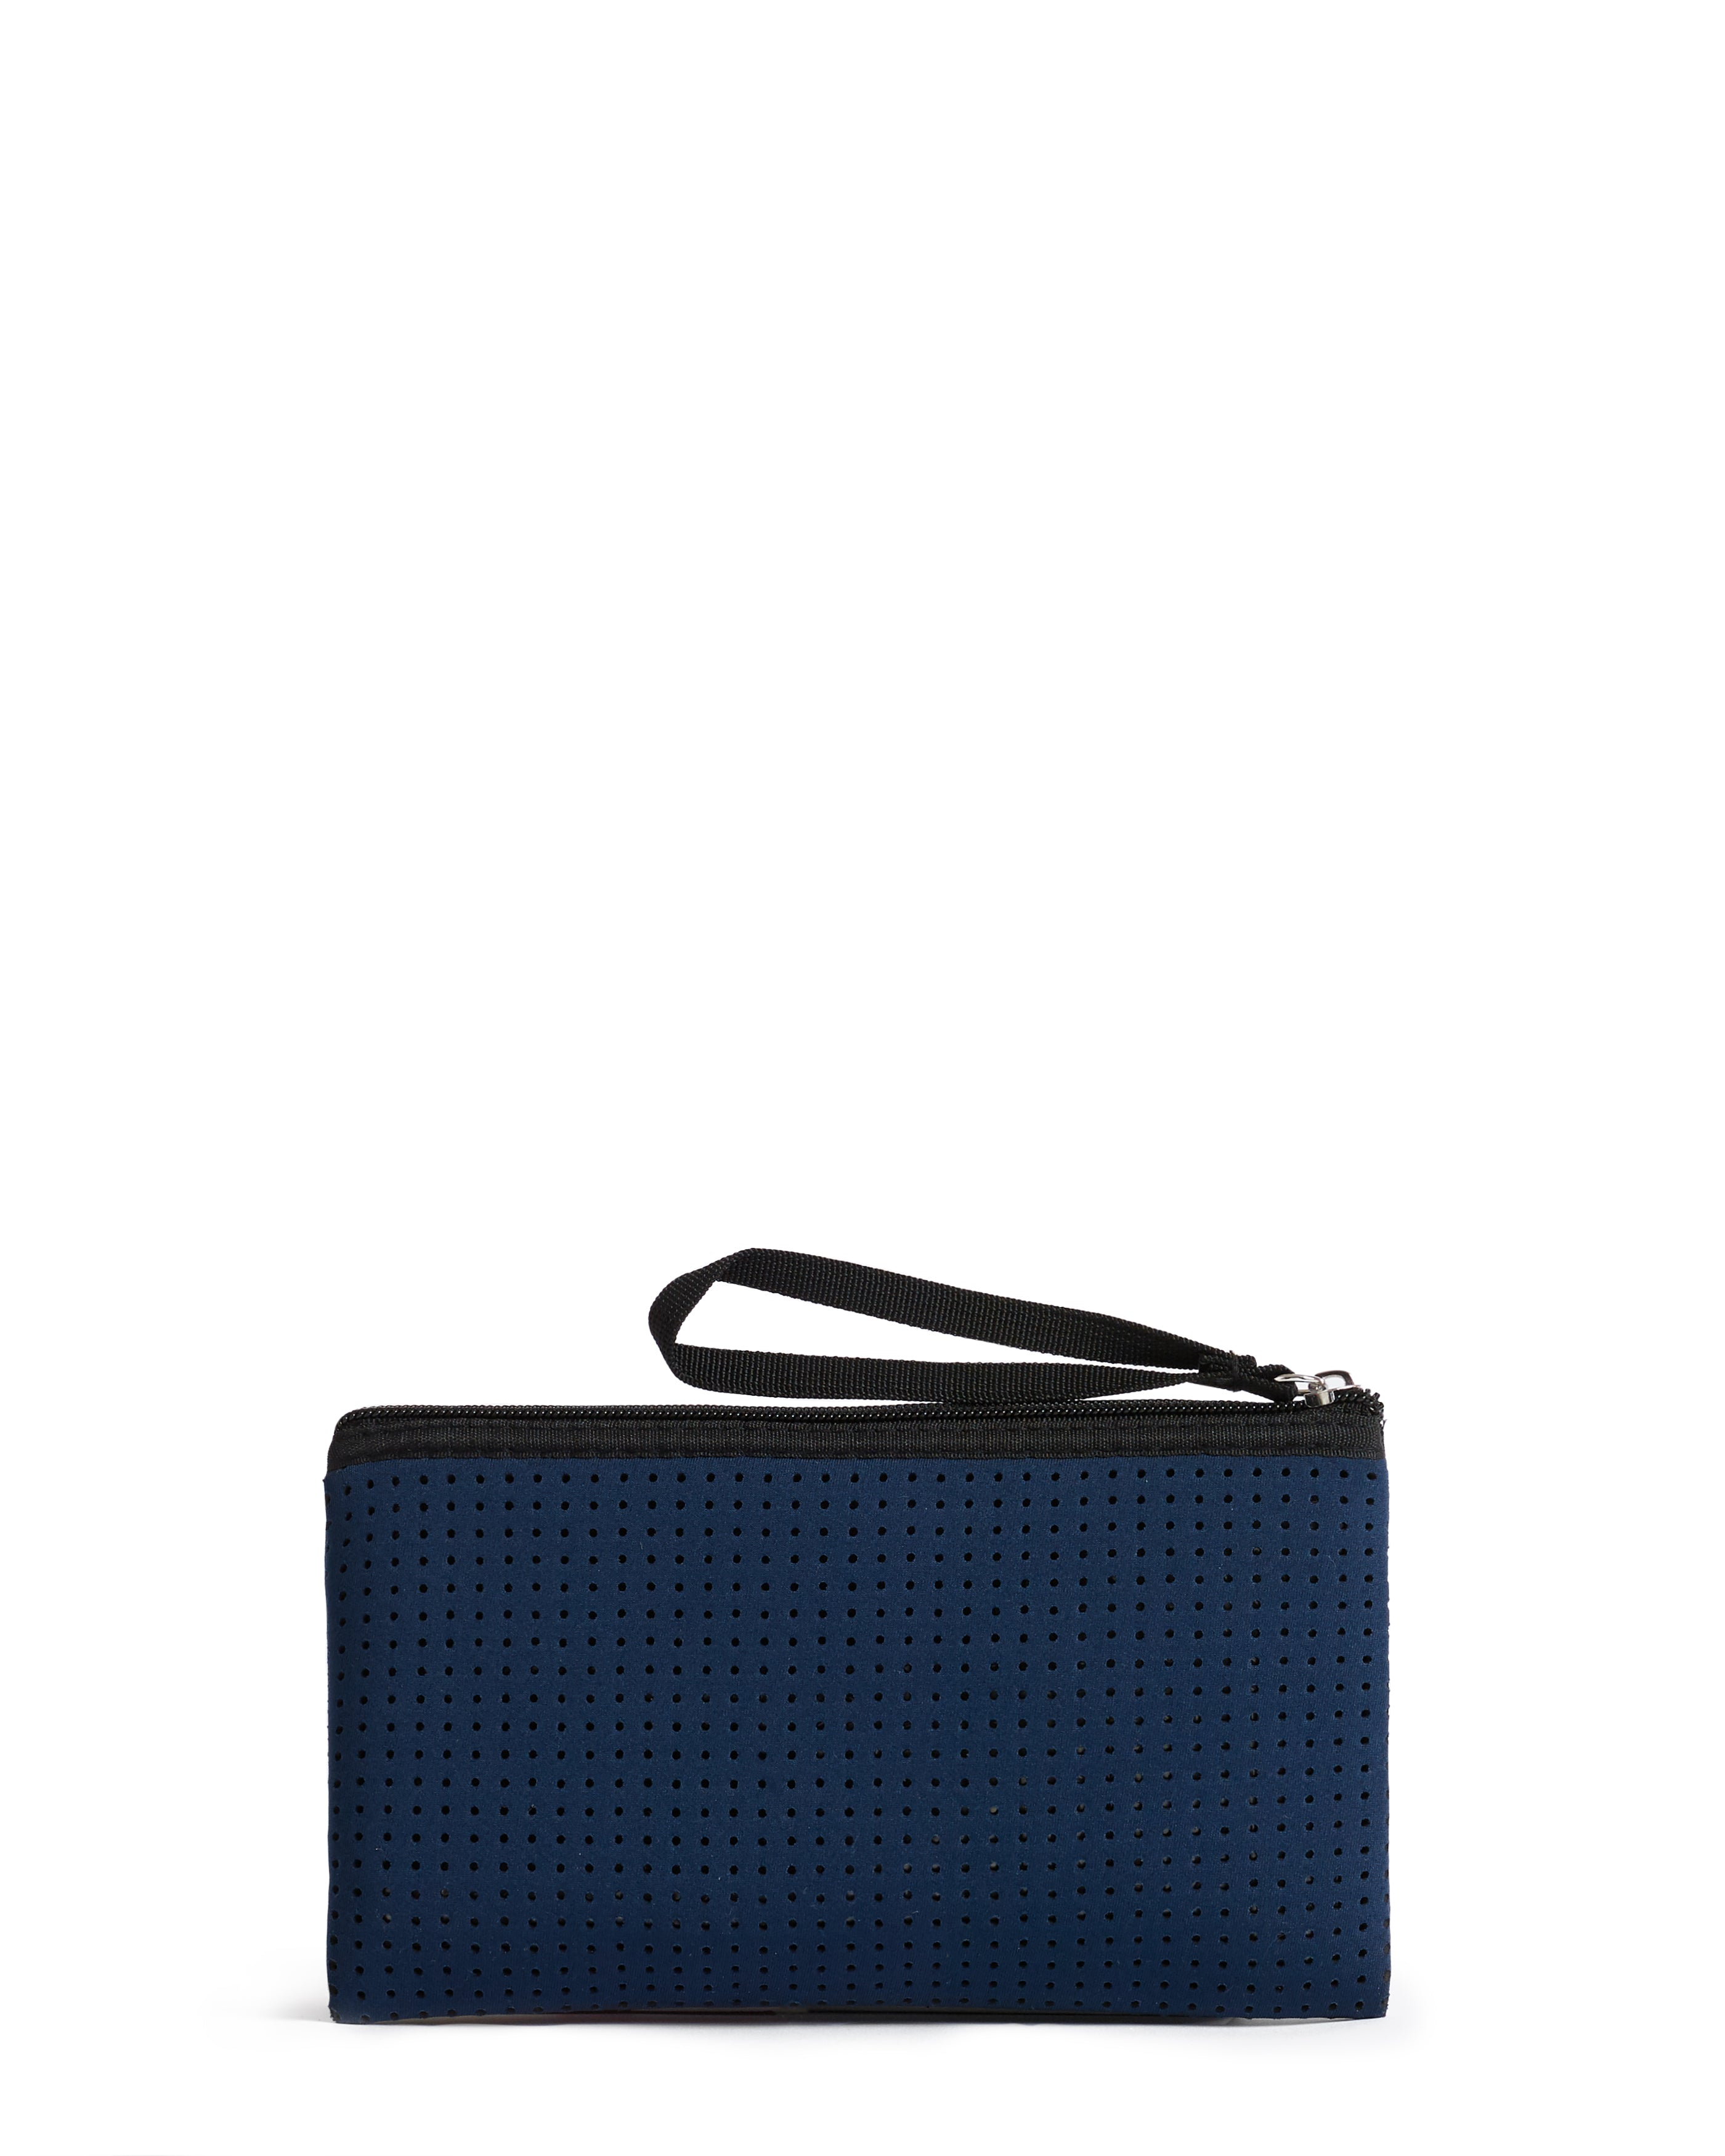 THE SORRENTO BAG (NAVY BLUE)